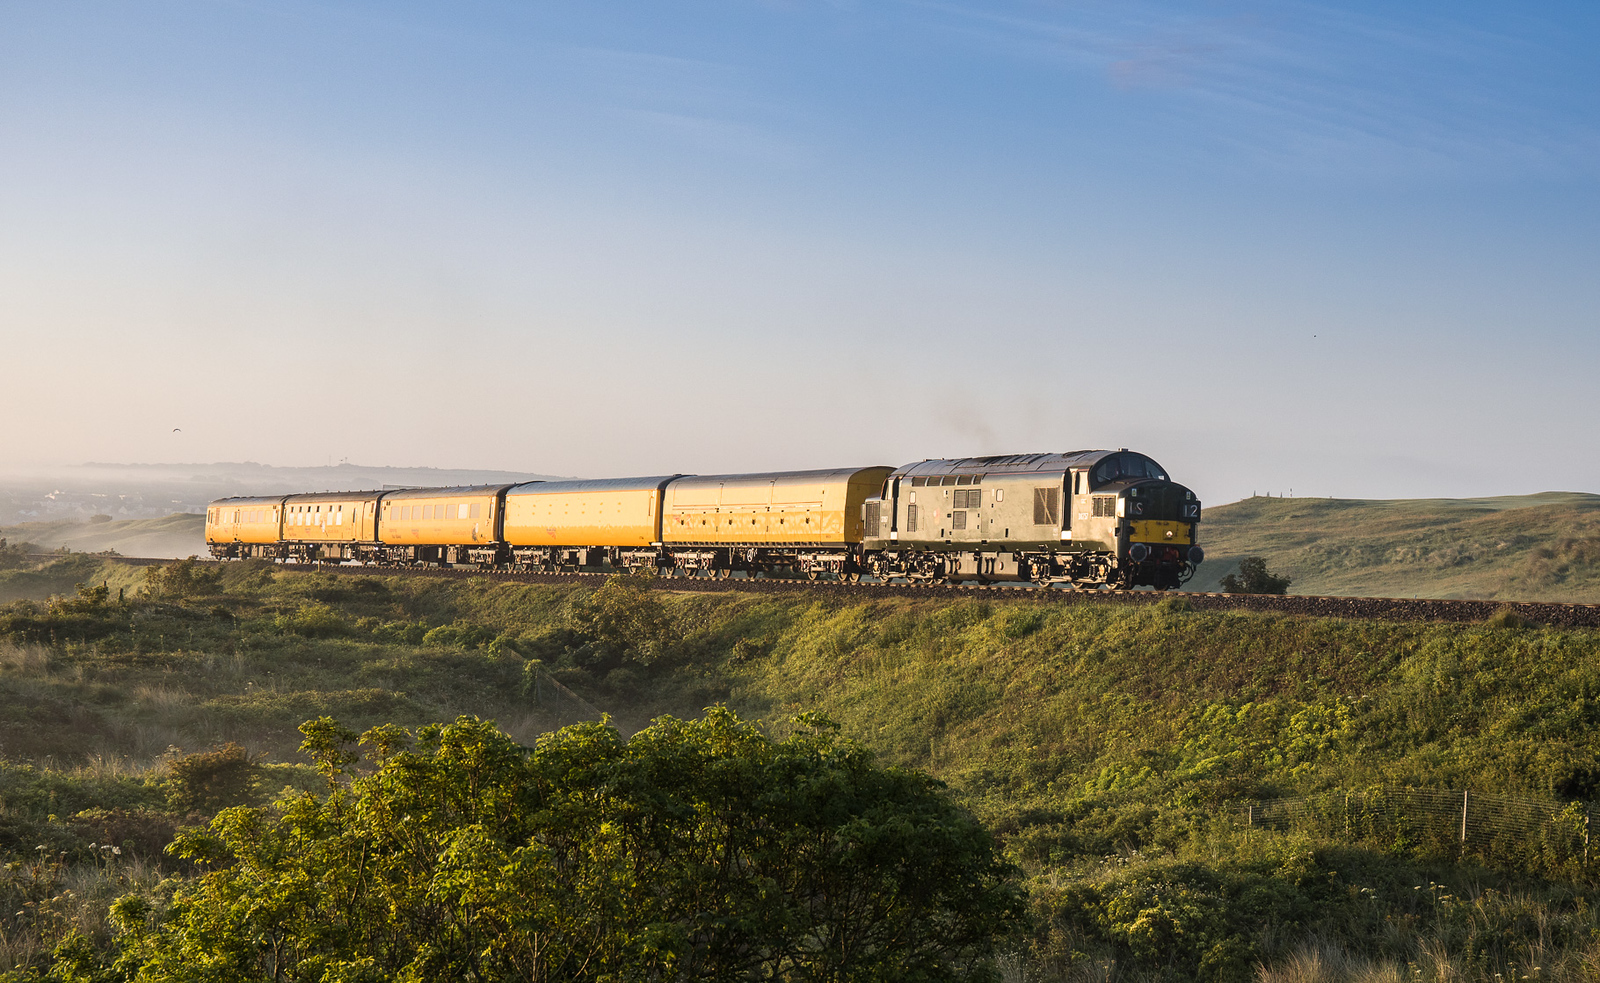 140617. With West Cornwall golf club in the back ground 37057 heads past the sand dunes of the SW coastal path and takes  3Q52 2229 Exeter Riverside N.Y. to Penzance towards St Ives.